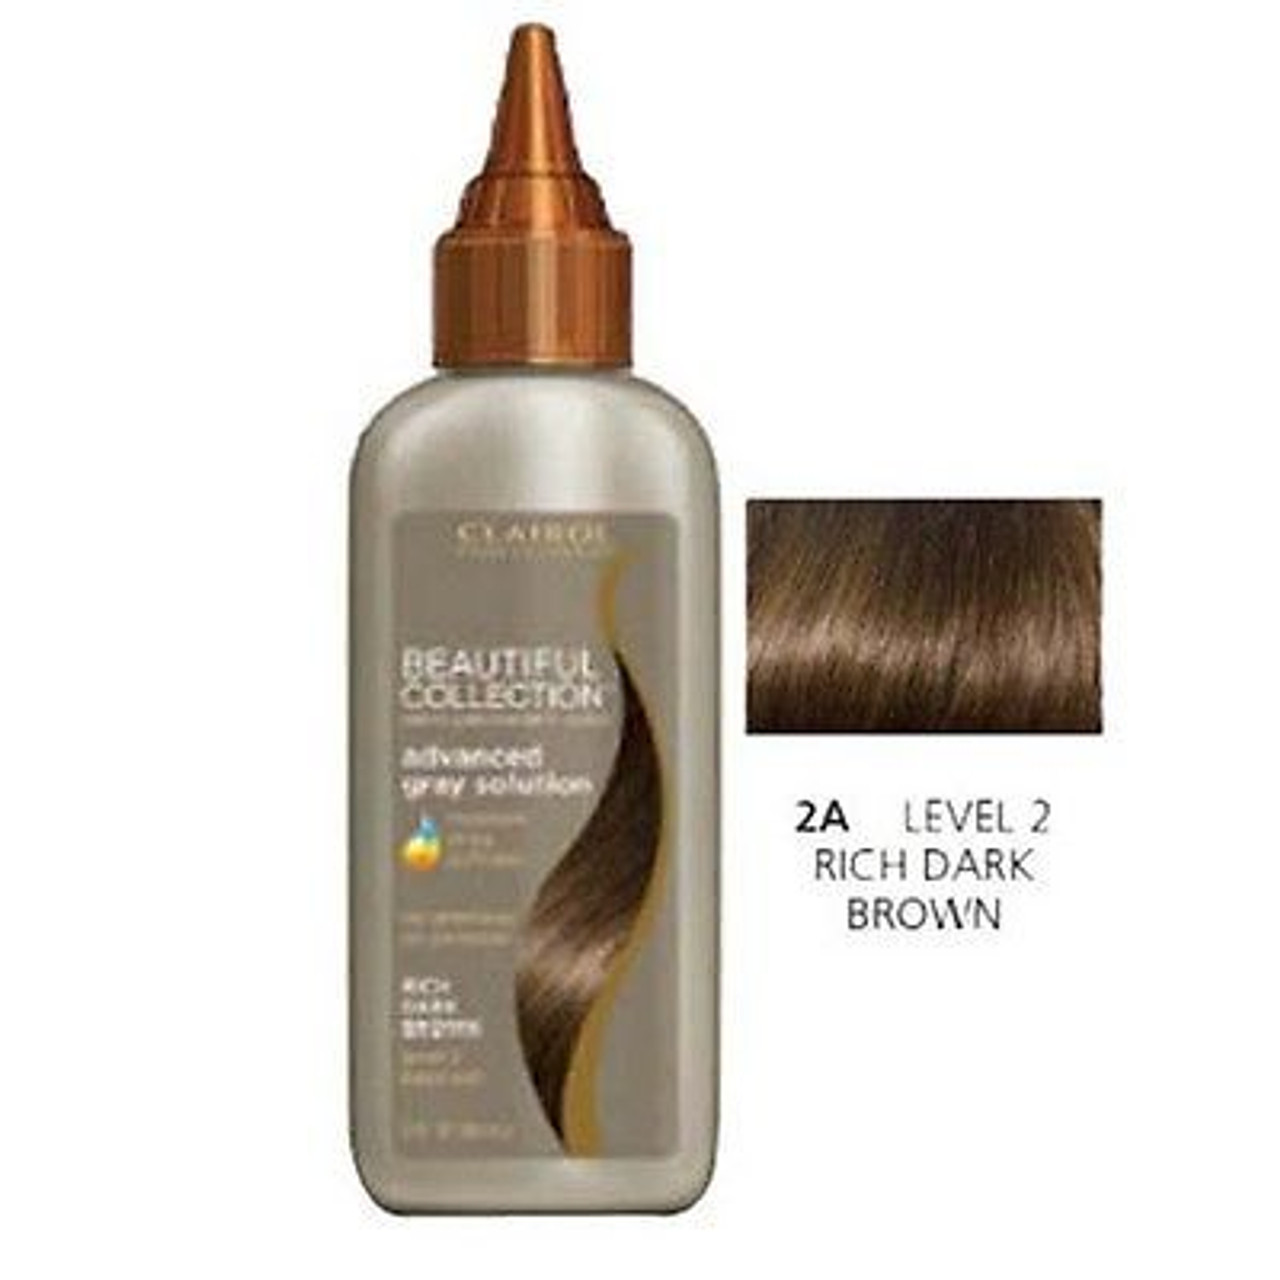 Clairol Beautiful Rich Dark Brown 3 oz